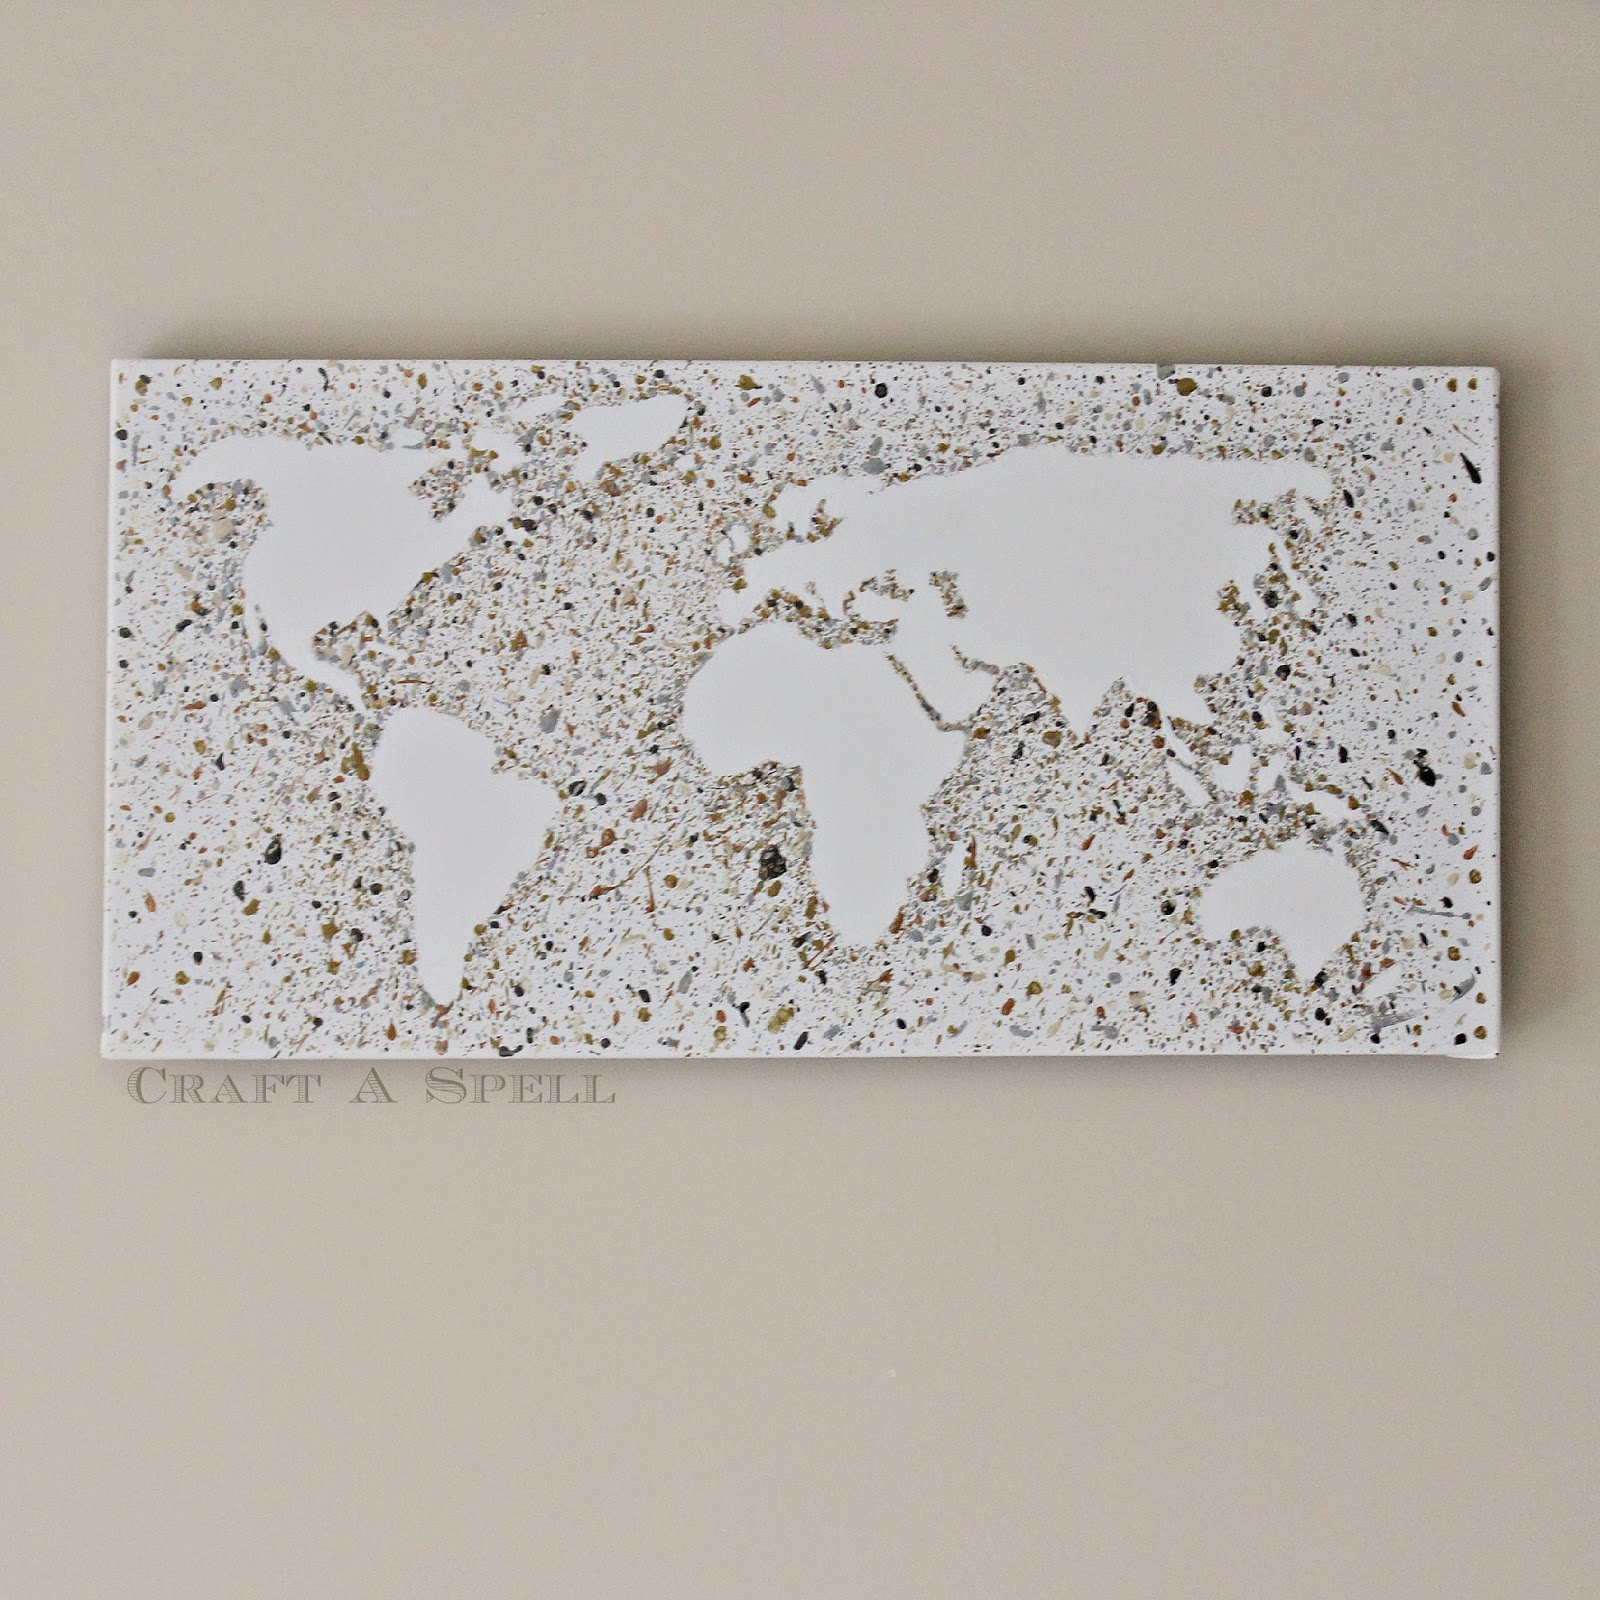 Craft a spell metallic world map splatter art metallic paints i used martha stewarts metallic line in gold light gold copper pewter platinum and sterling silver paint brushes 12x24 canvas gumiabroncs Gallery